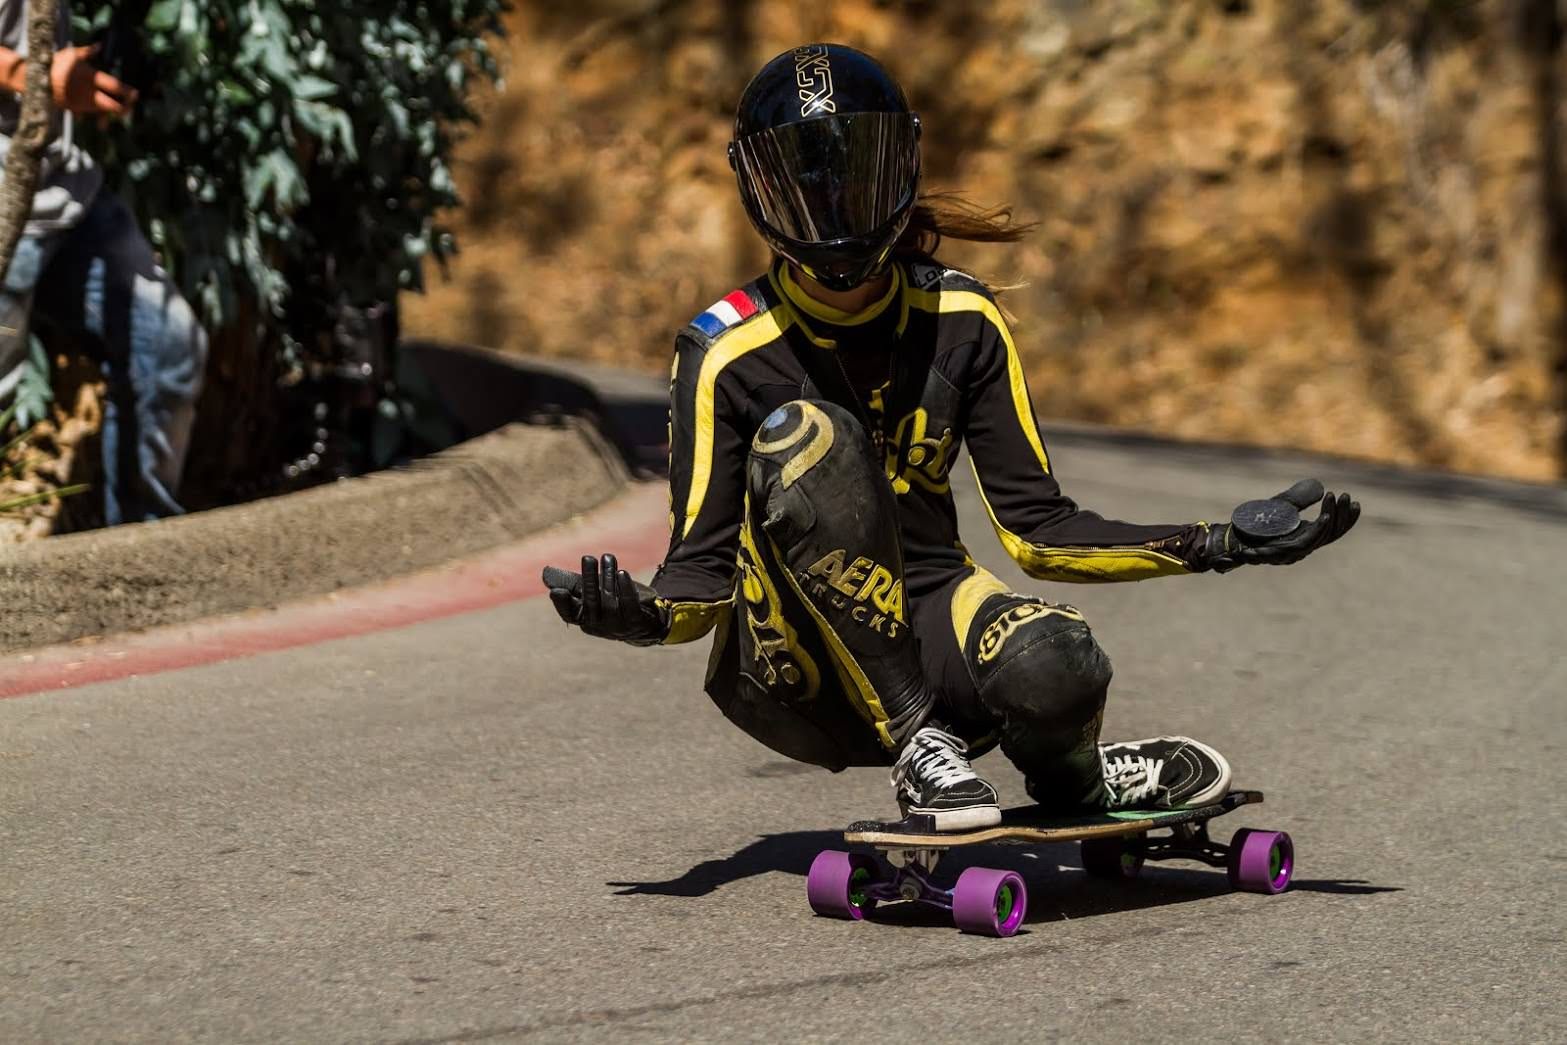 Downhill Skateboarding on Orangatang Kegels